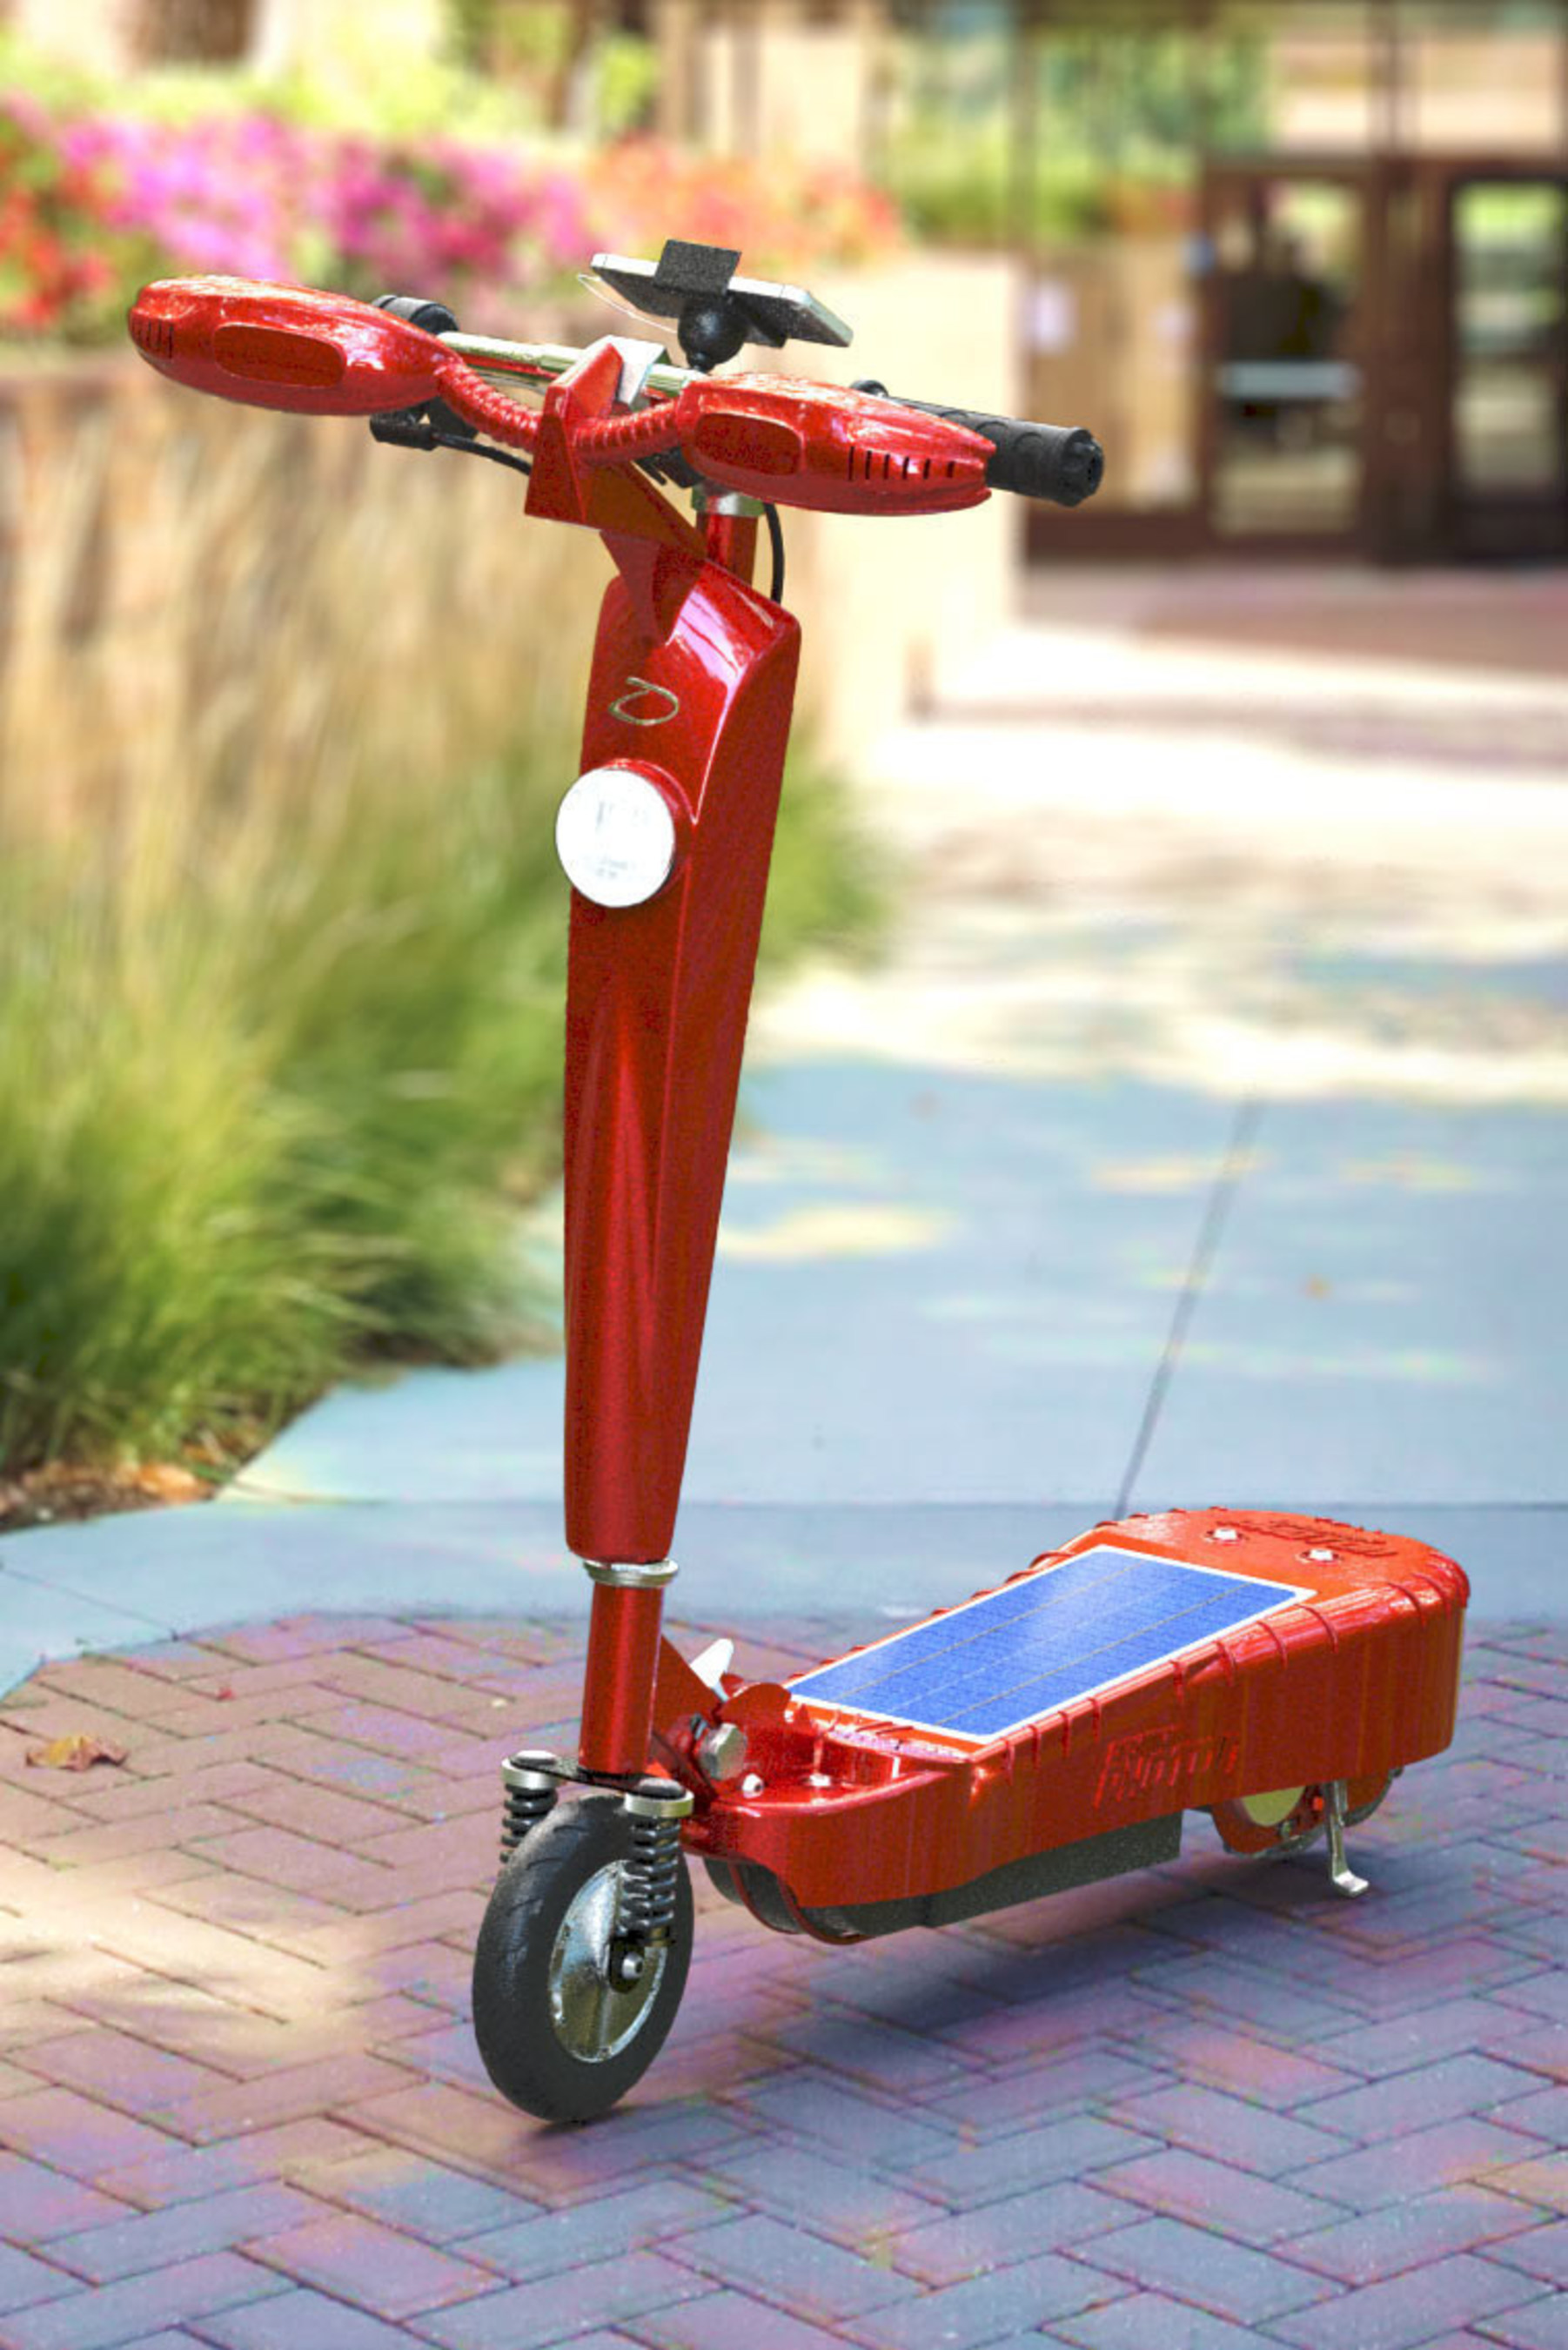 Daymak Photon Solar Scooter